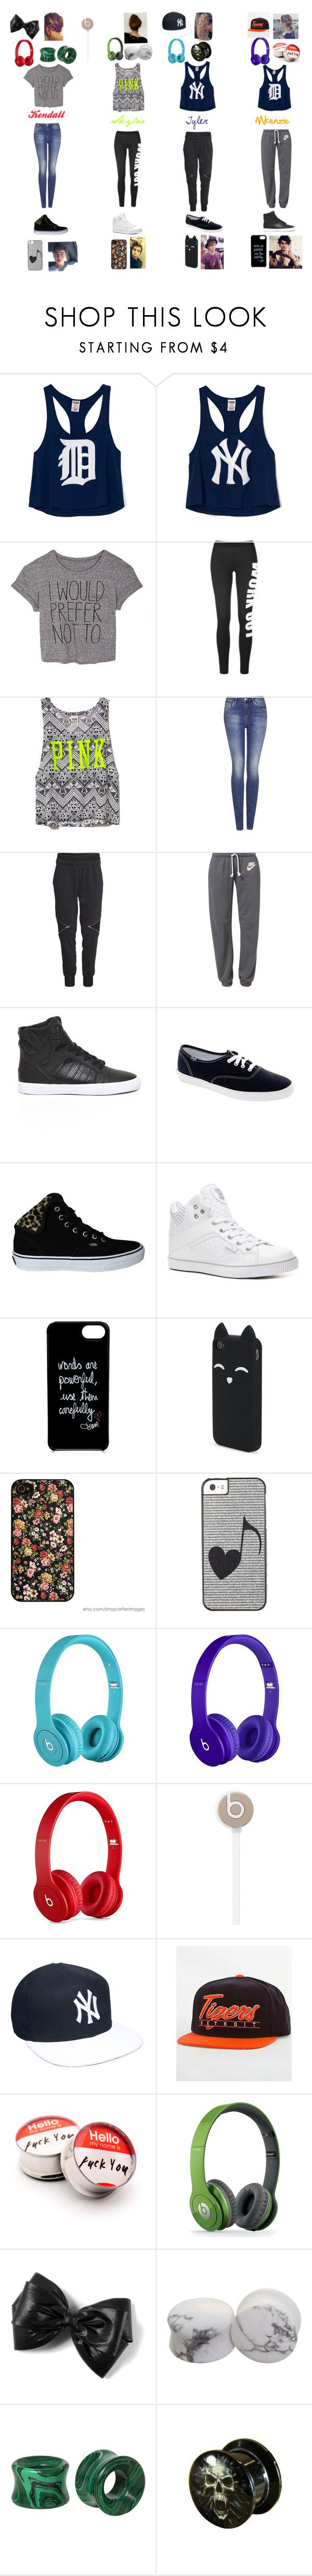 """Ride to Kalahari (5sos Girlfriends)-Quotev"" by luvtofashion ❤ liked on Polyvore featuring Victoria's Secret PINK, Victoria's Secret, Topshop, H&M, NIKE, Supra, Keds, Vans, Pastry and Diane Von Furstenberg"